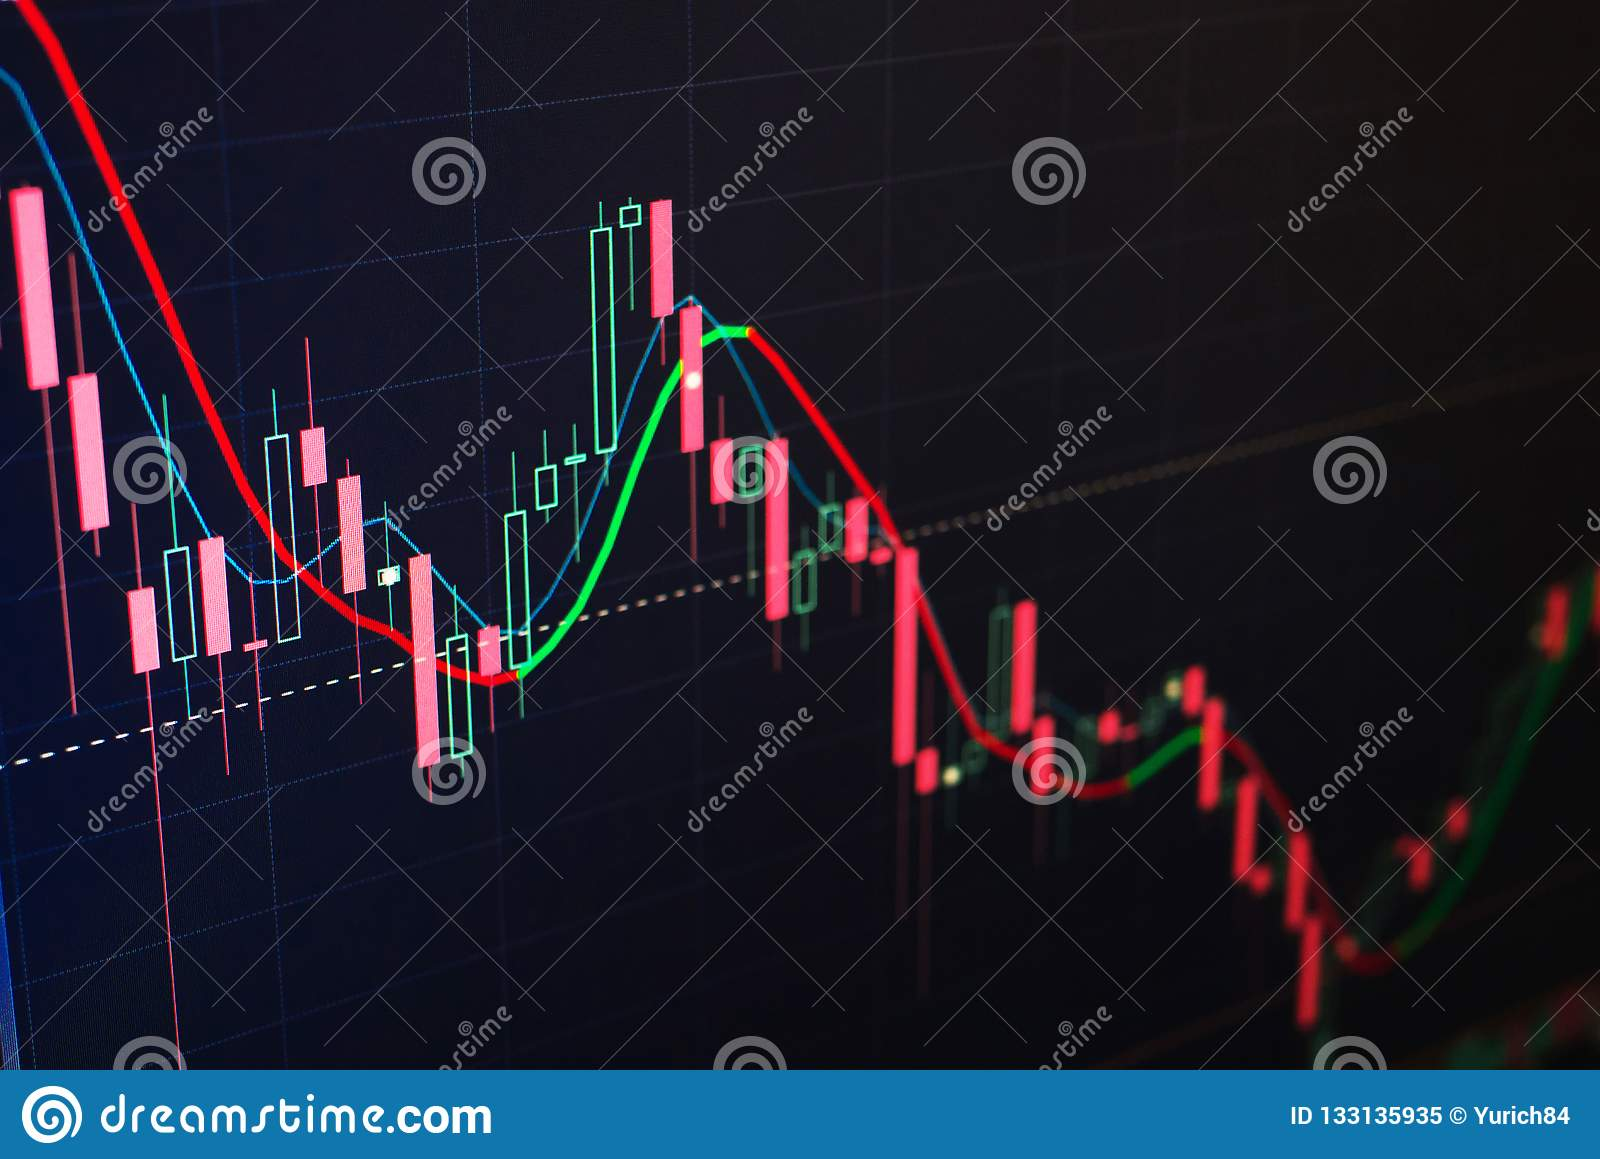 Red and green candles of stock exchange. Trading concept. Technical analysis